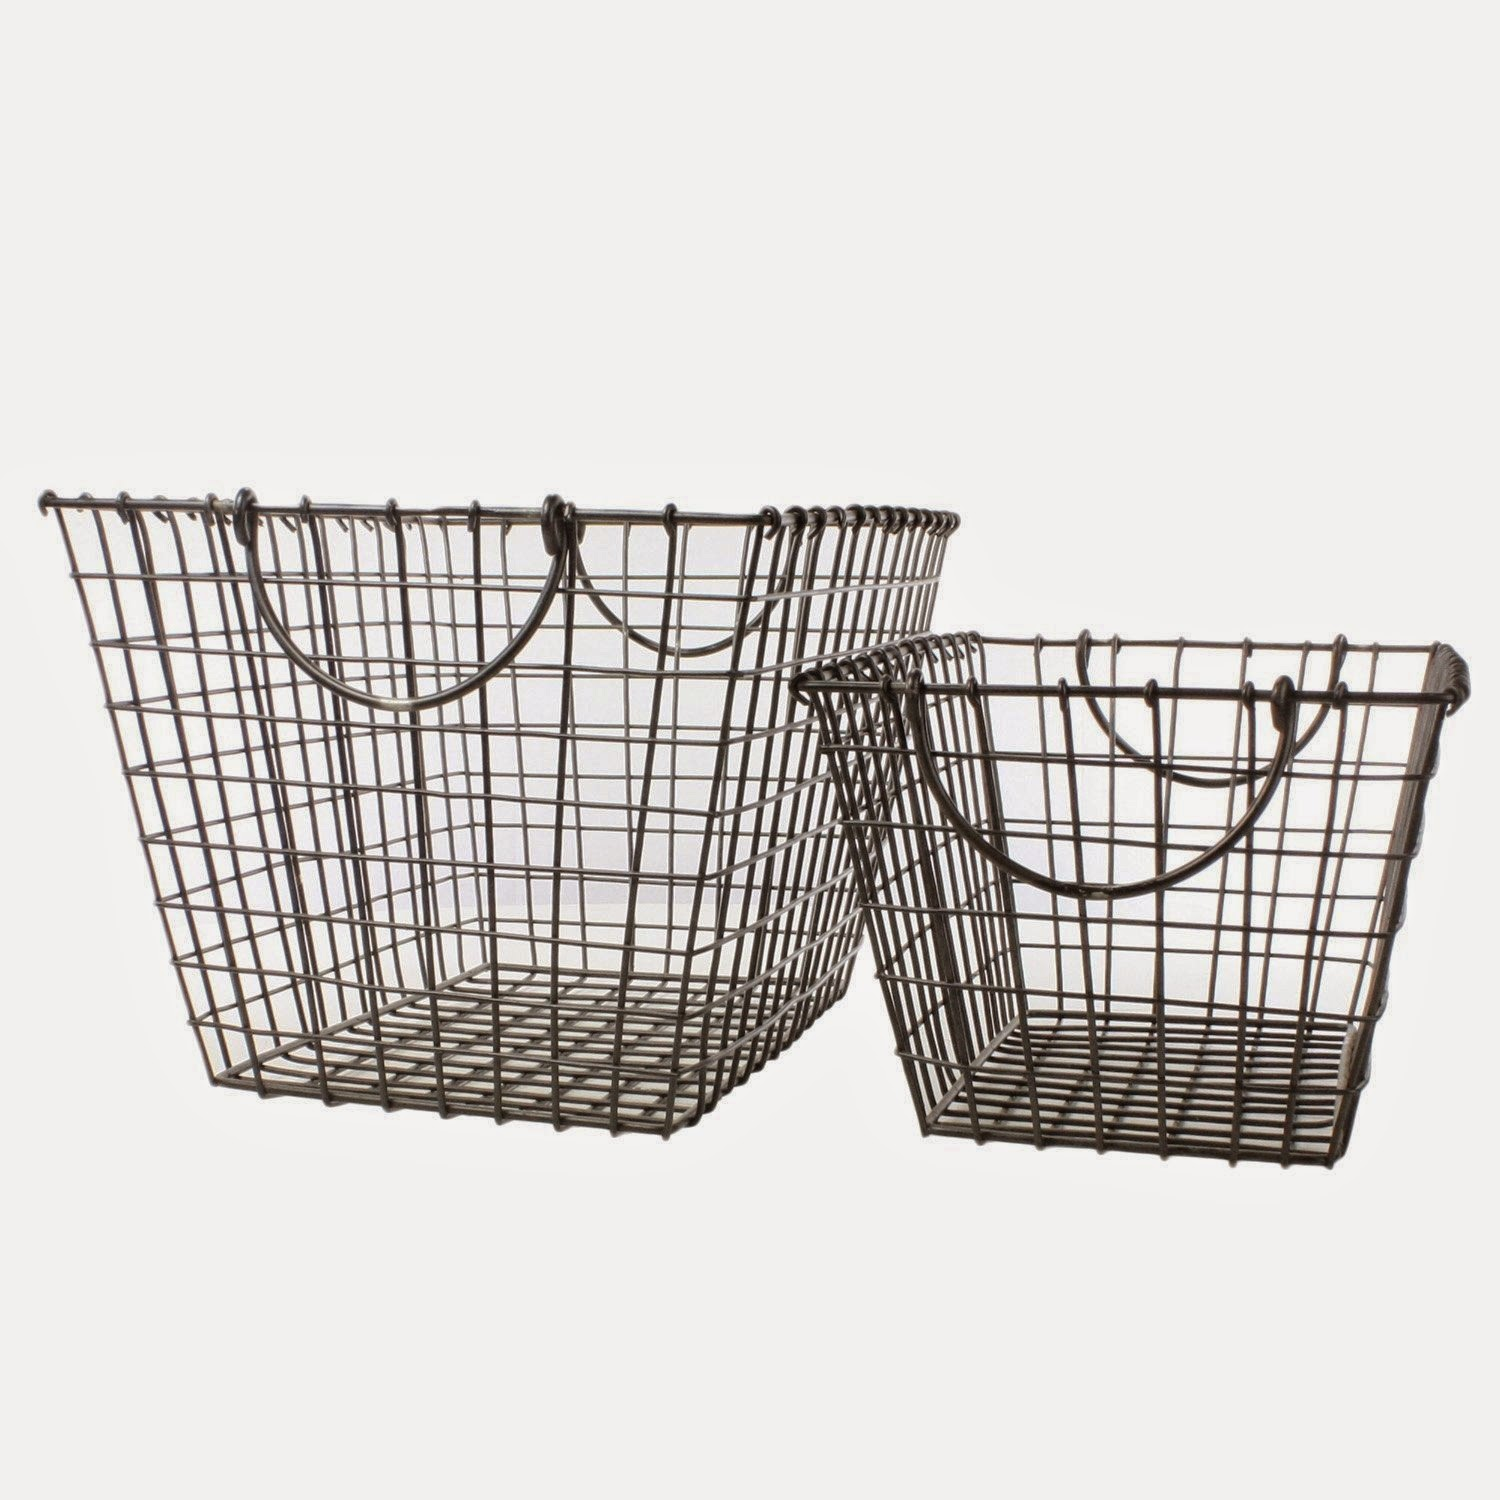 deeauvil organizing with wire baskets. Black Bedroom Furniture Sets. Home Design Ideas